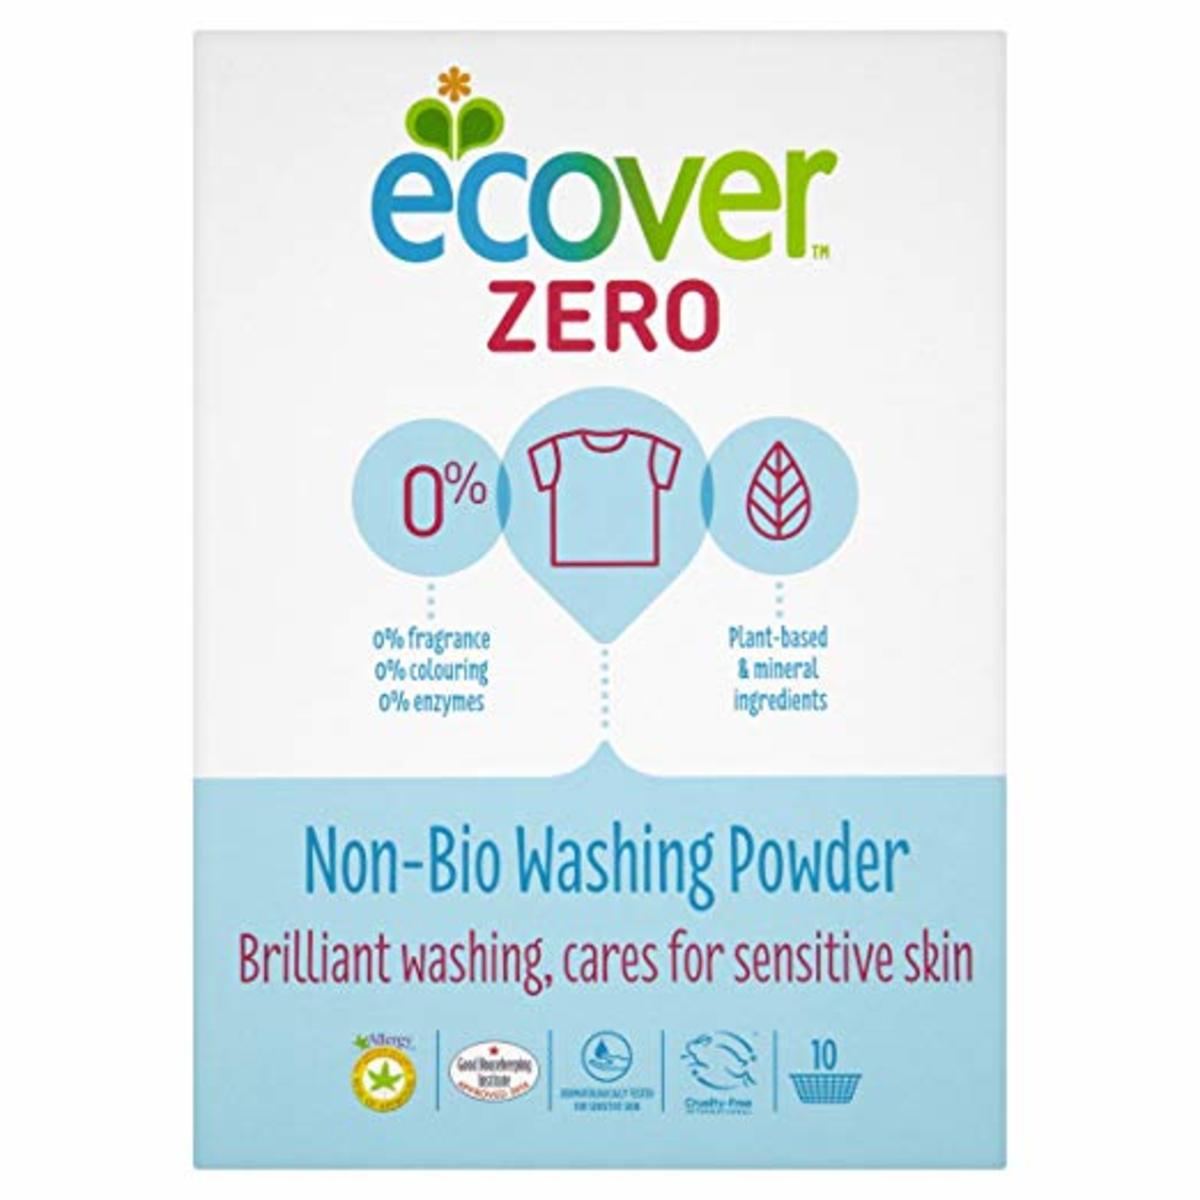 Ecover laundry detergent is my favorite. Plant- and mineral-based, fragrance-free.